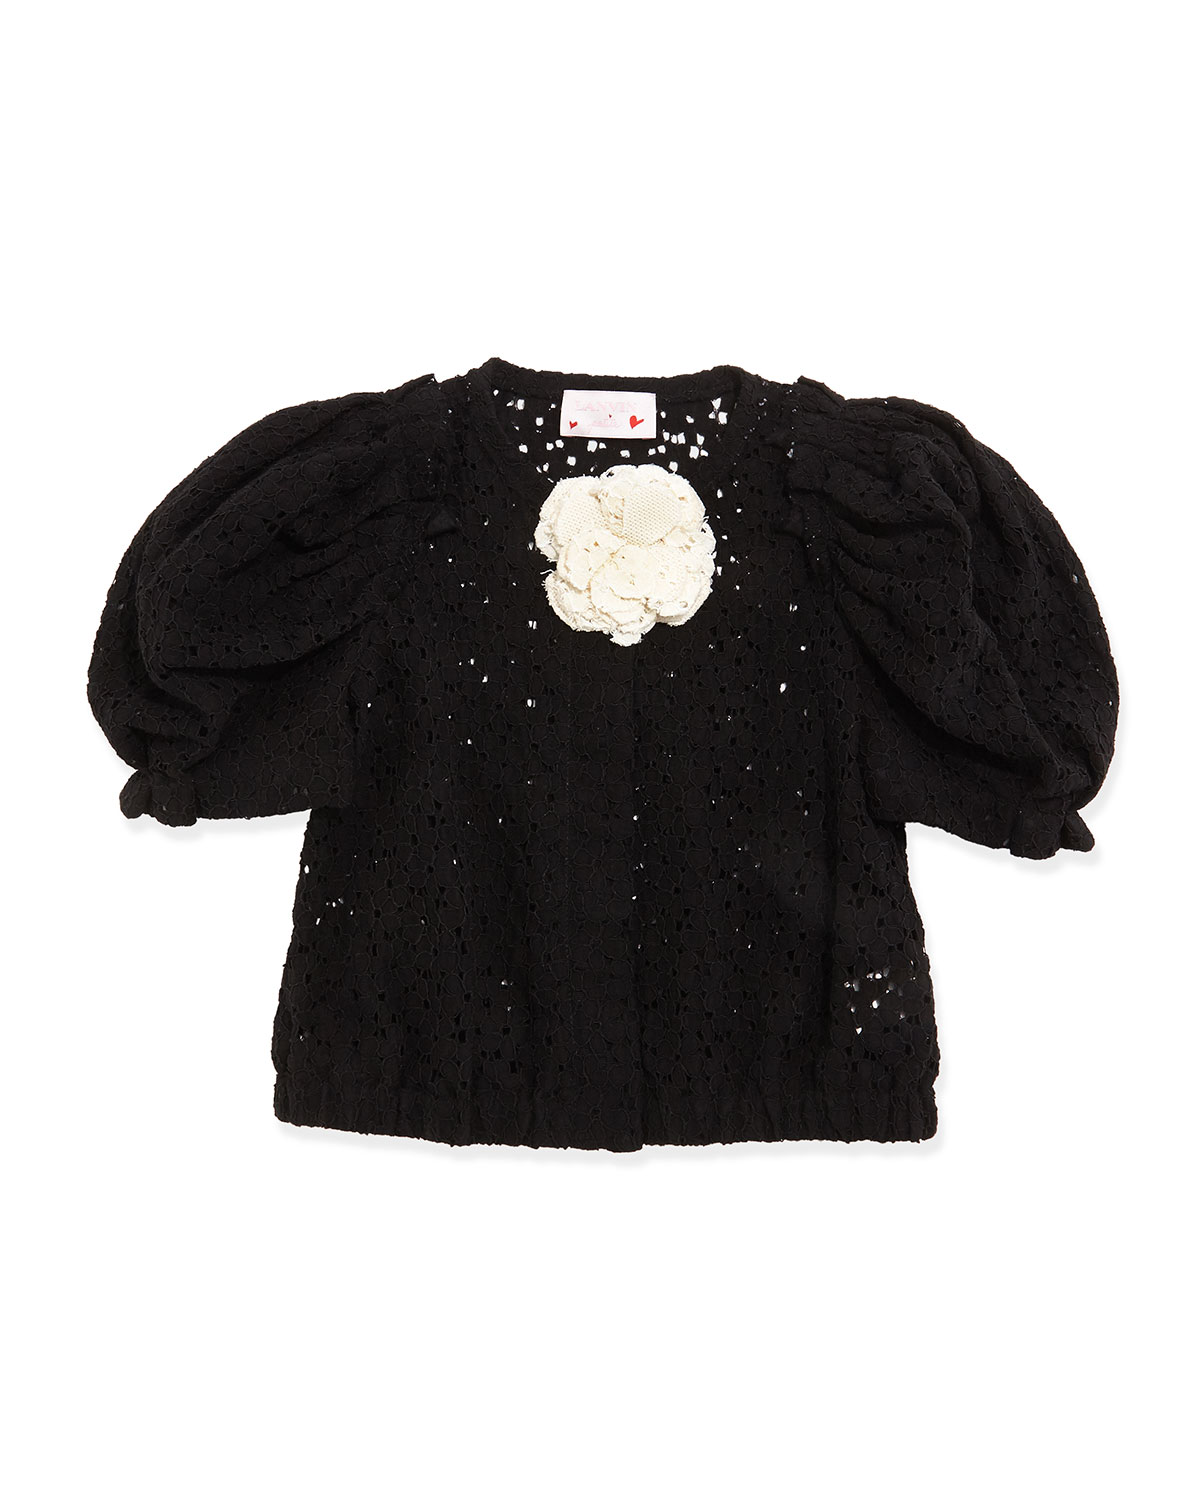 Short-Sleeve Lace Jacket, Black, Girls' Size 8-12